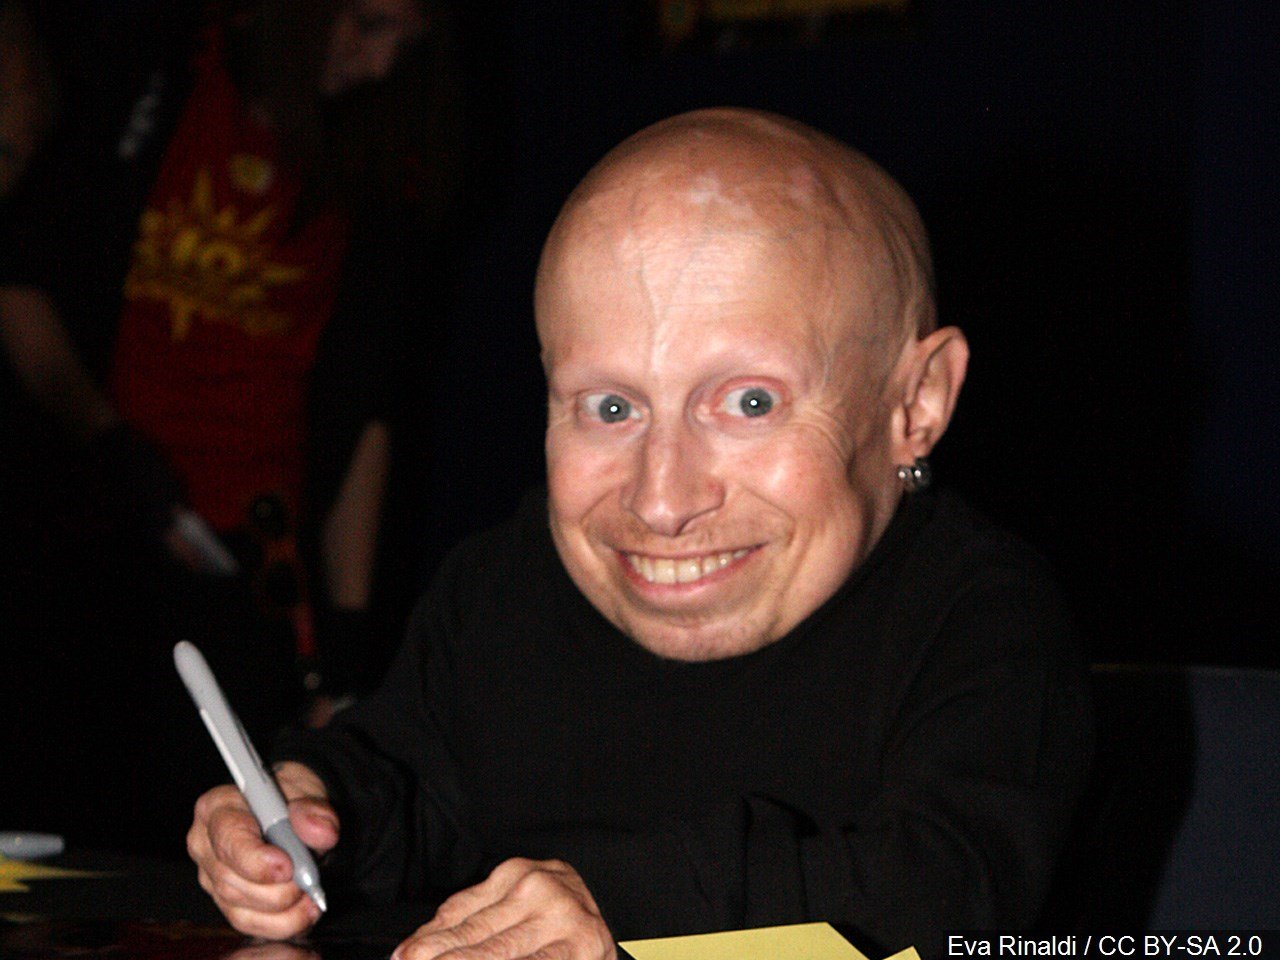 Actor Verne Troyer from 'Austin Powers' films dead at 49 / MGN Online